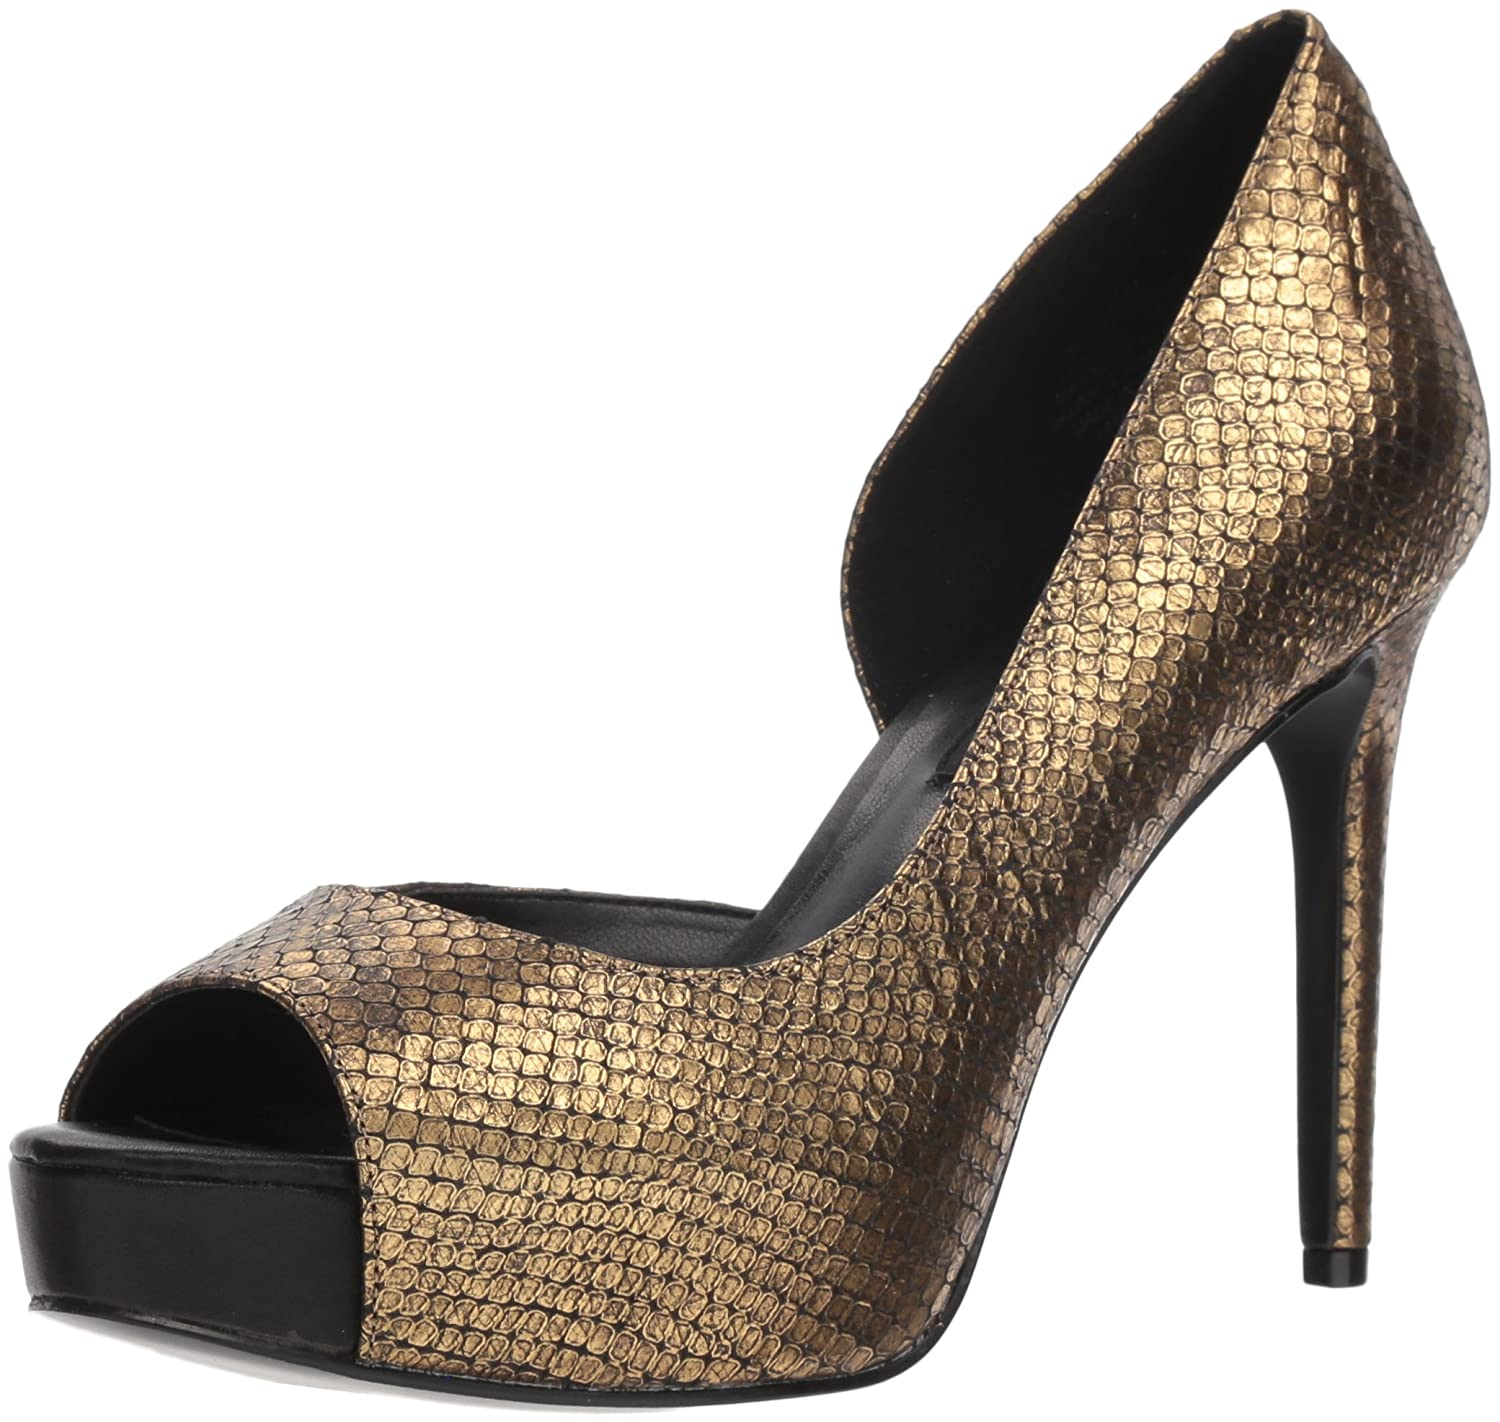 Nine West Women's Expensive Metallic Pump B077W16WKS 8 B(M) US|Gold